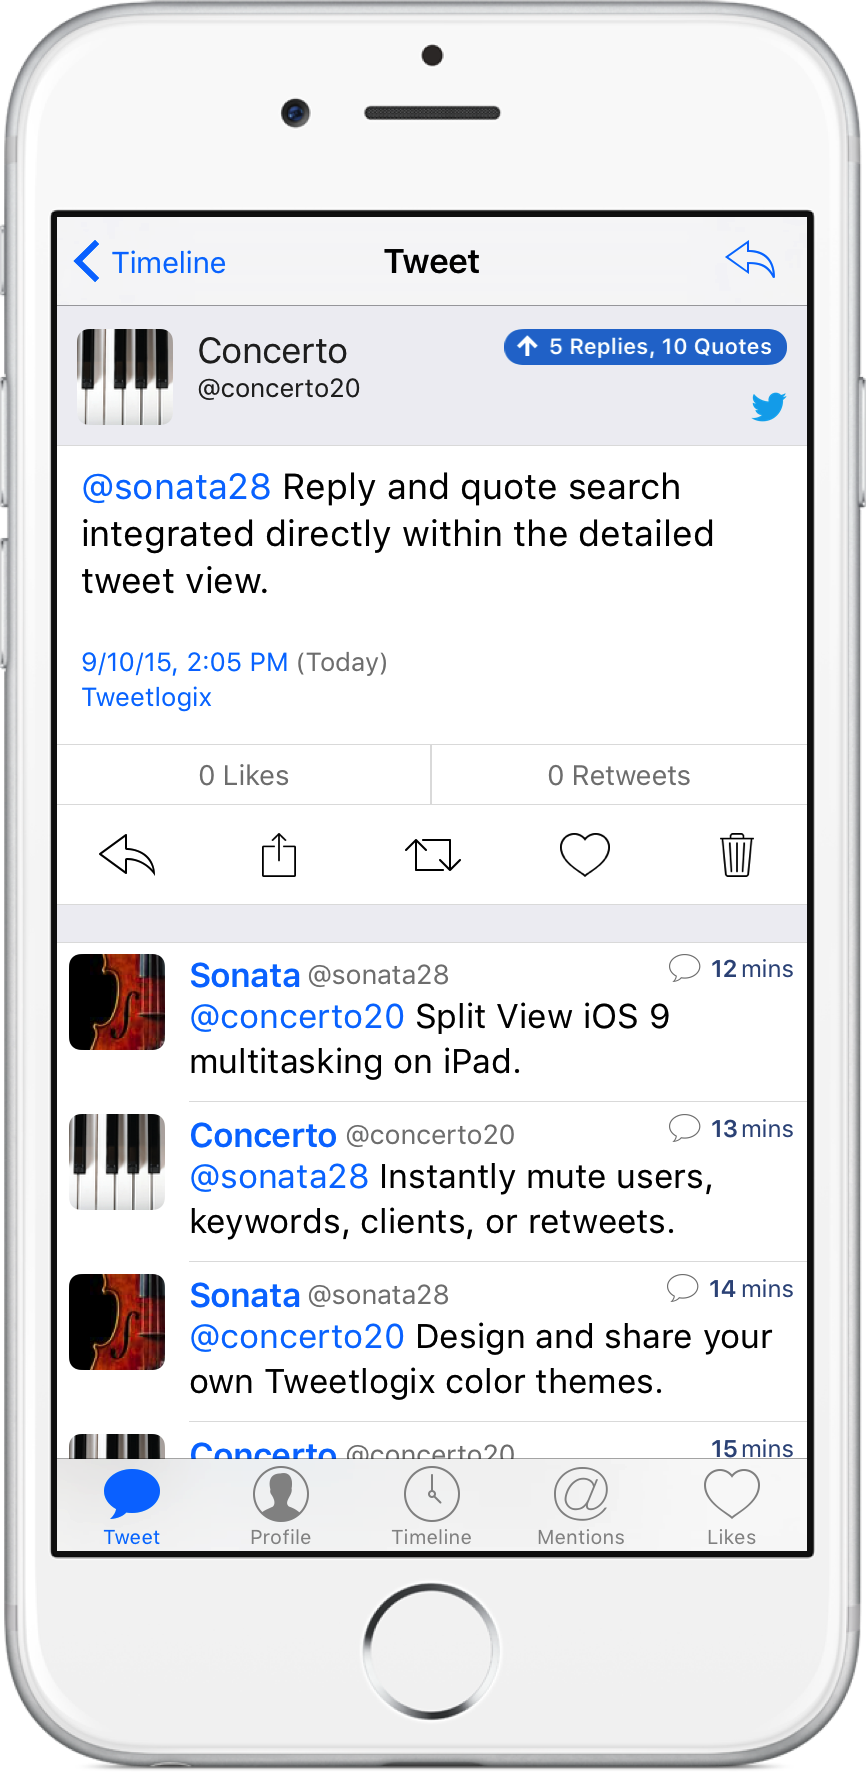 Quote Search in Detailed Tweet View